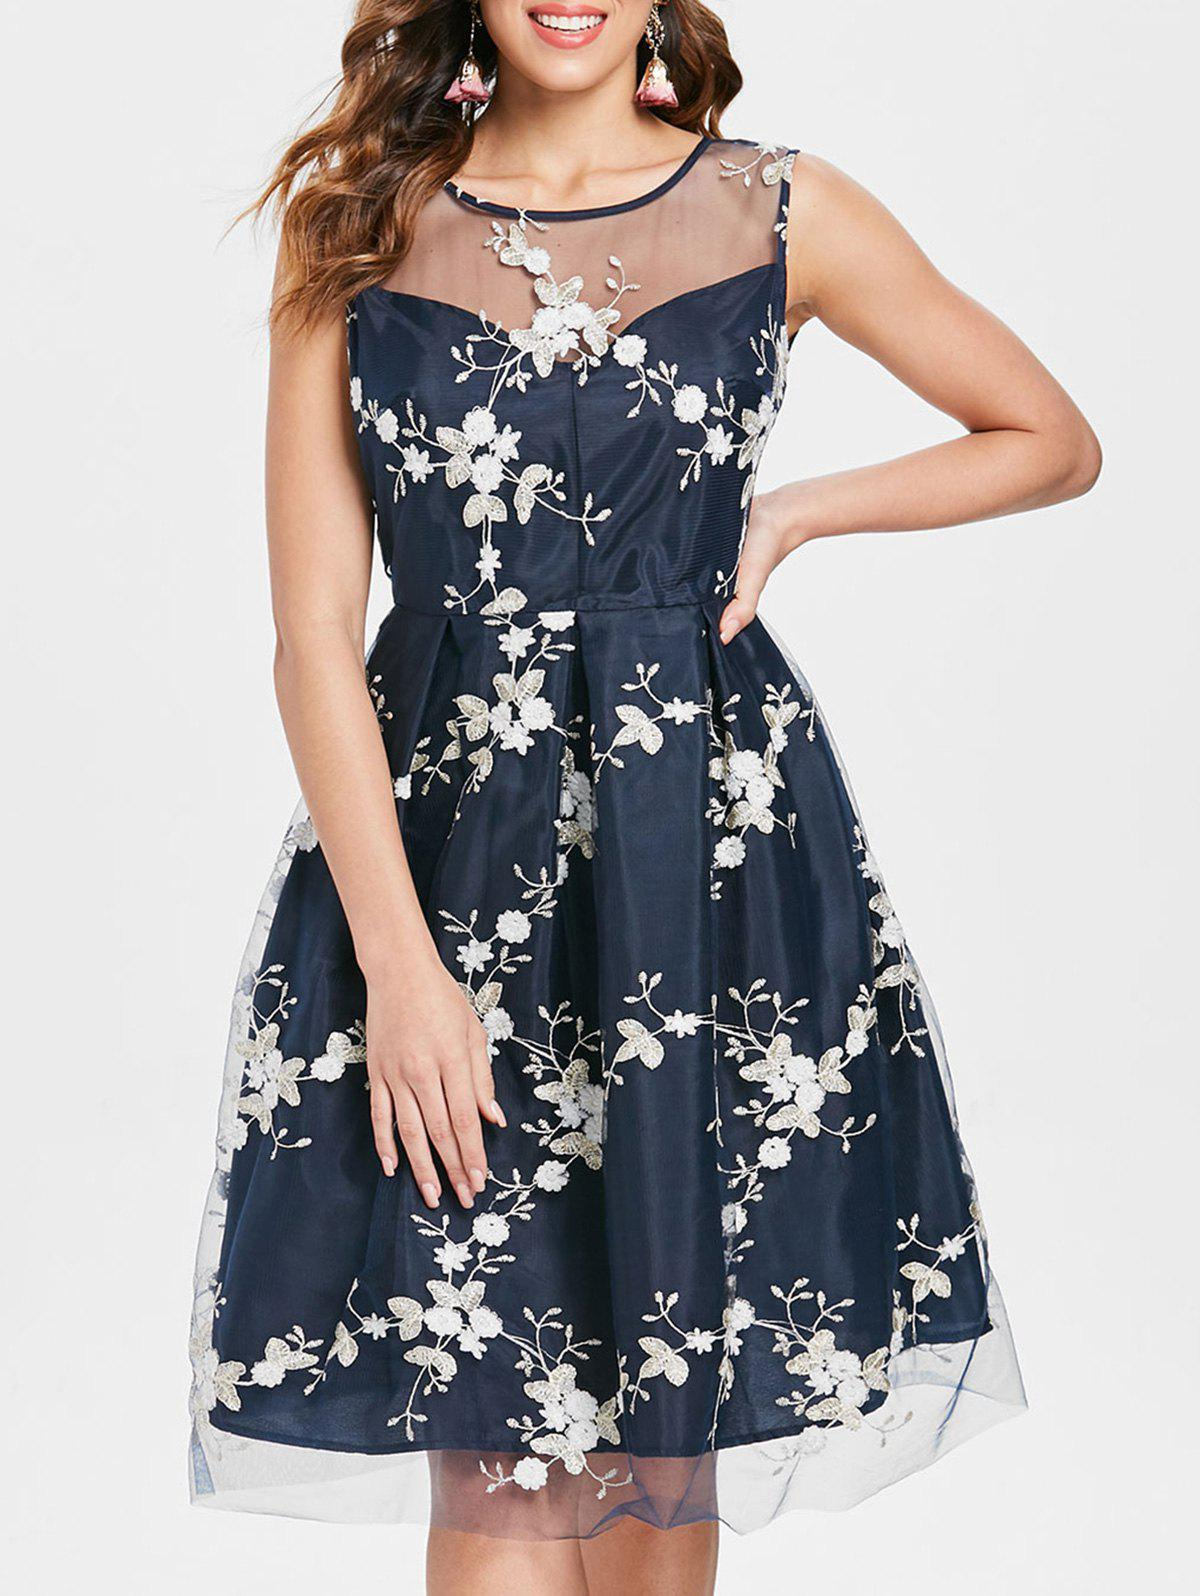 Affordable Sleeveless Floral Lace Overlay Dress